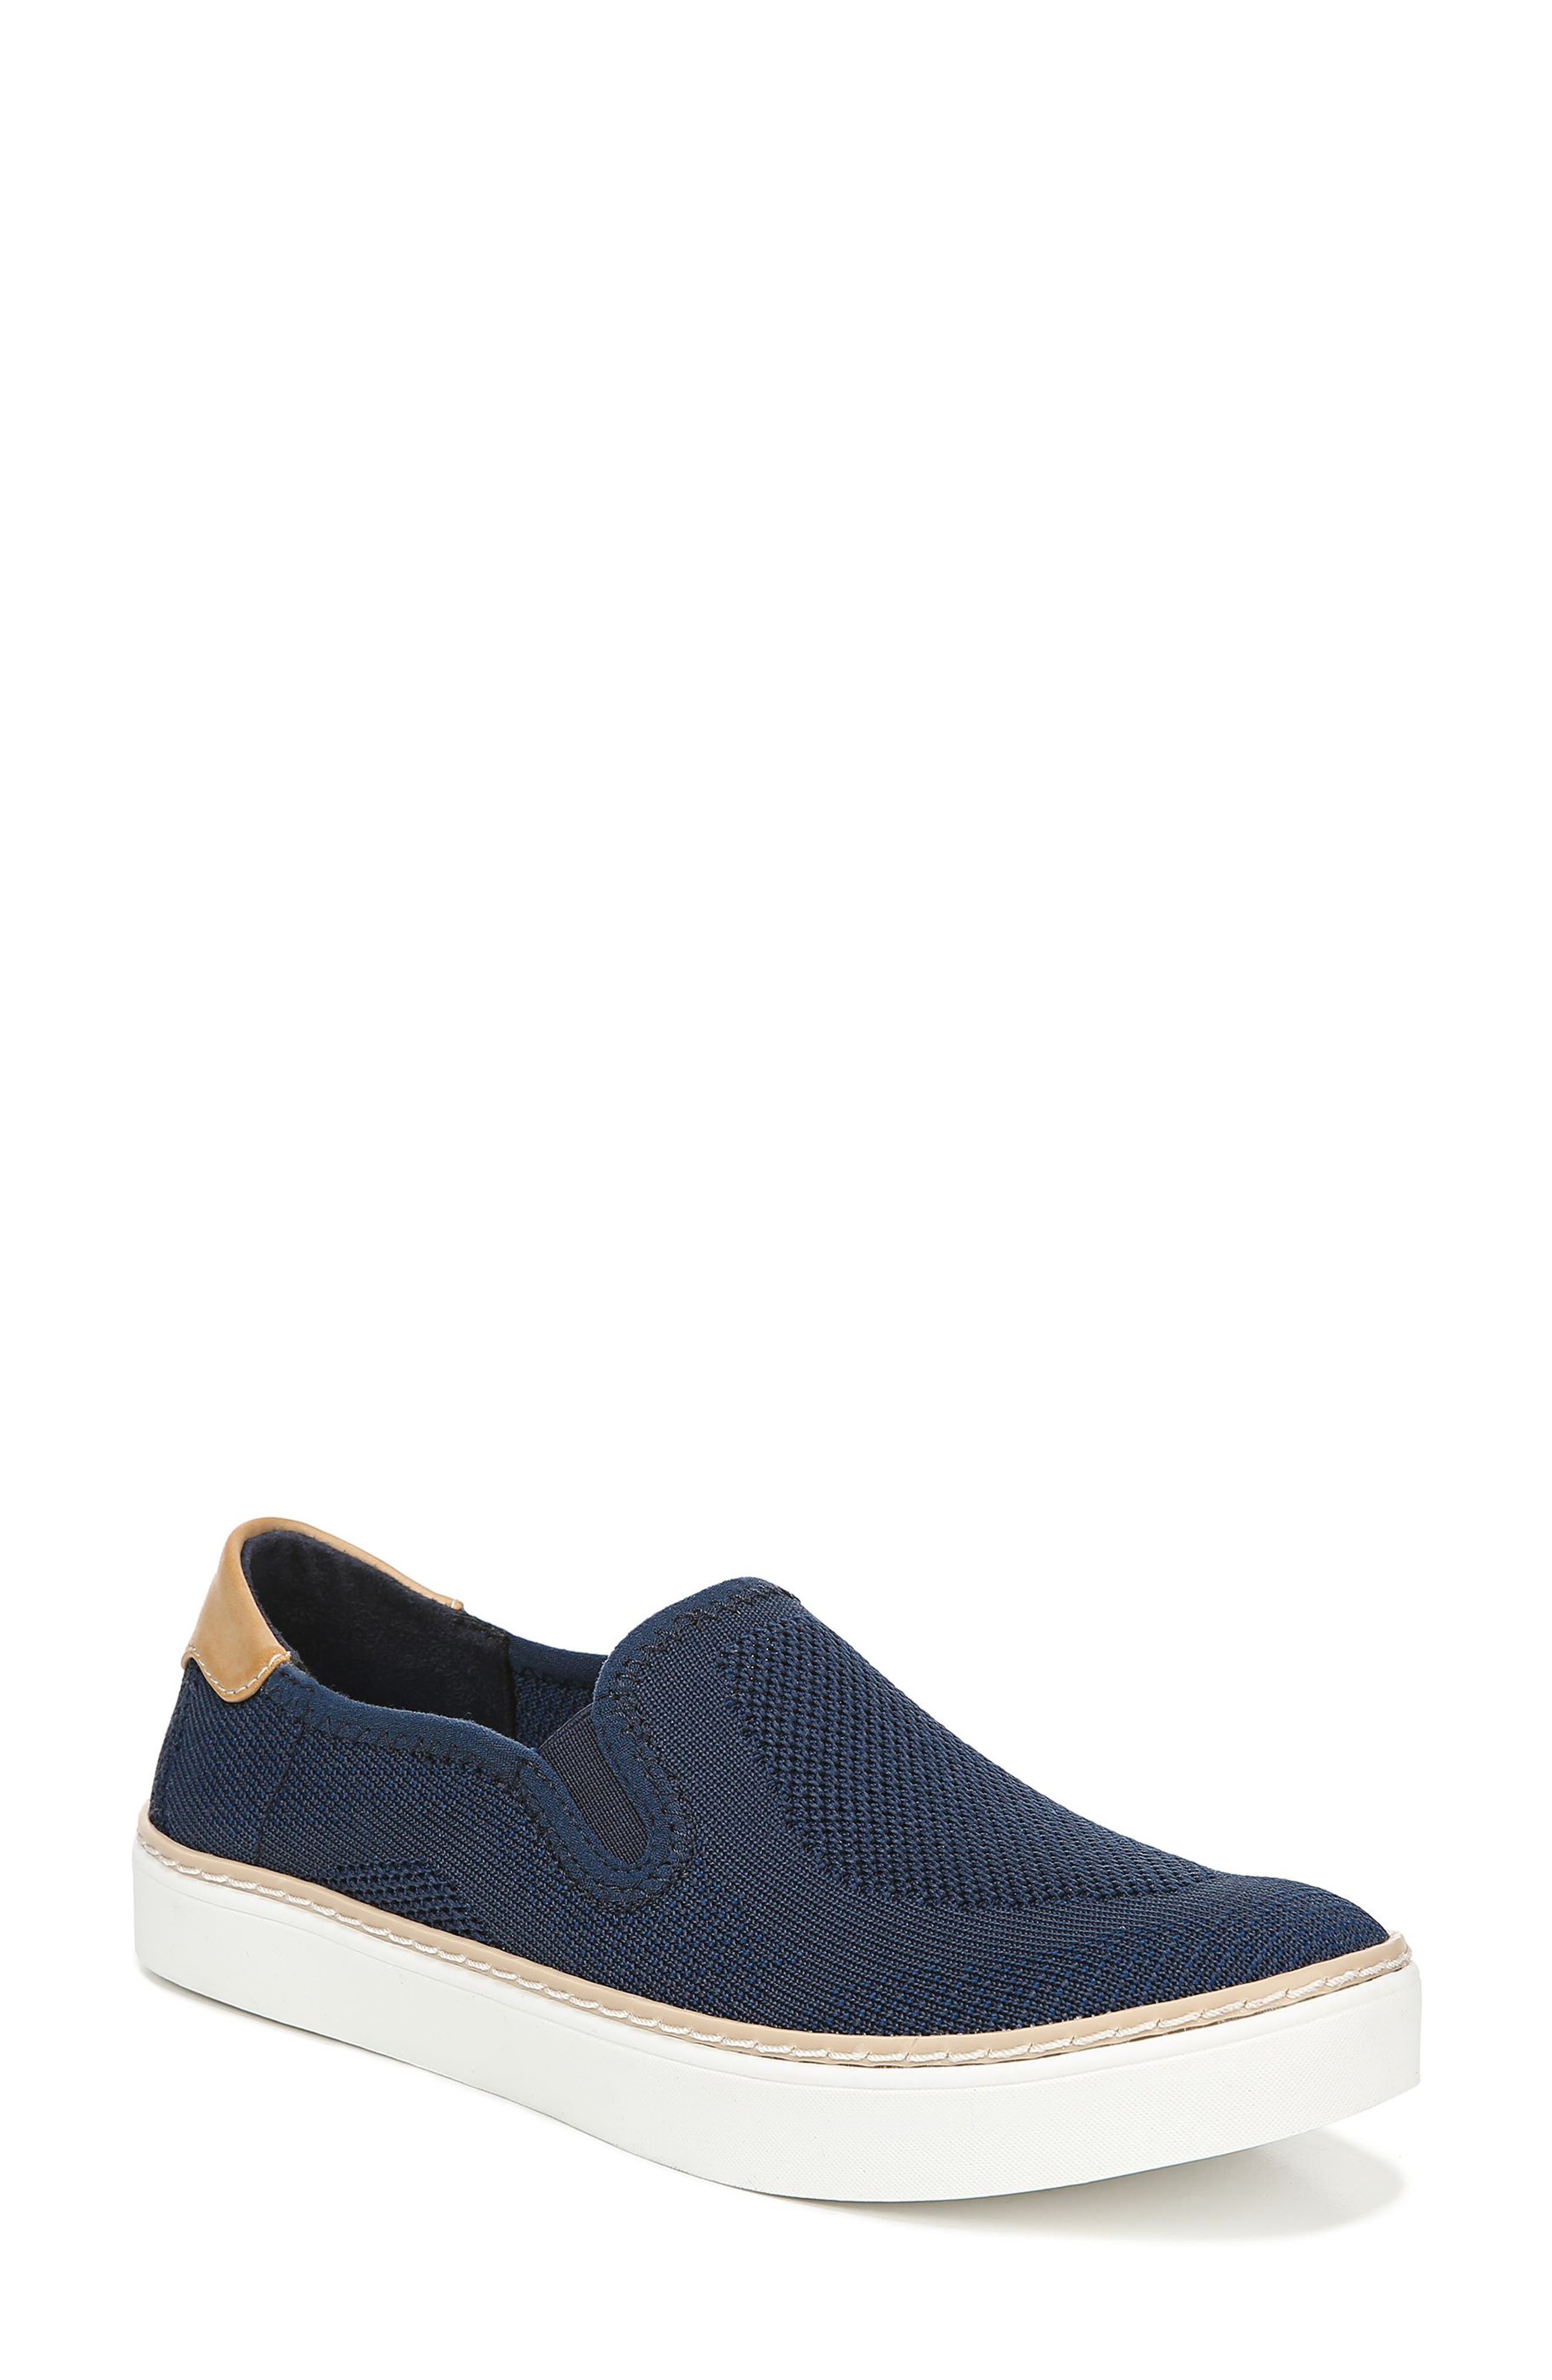 DR. SCHOLL'S Madi Slip-On Sneaker, Main, color, NAVY KNIT FABRIC